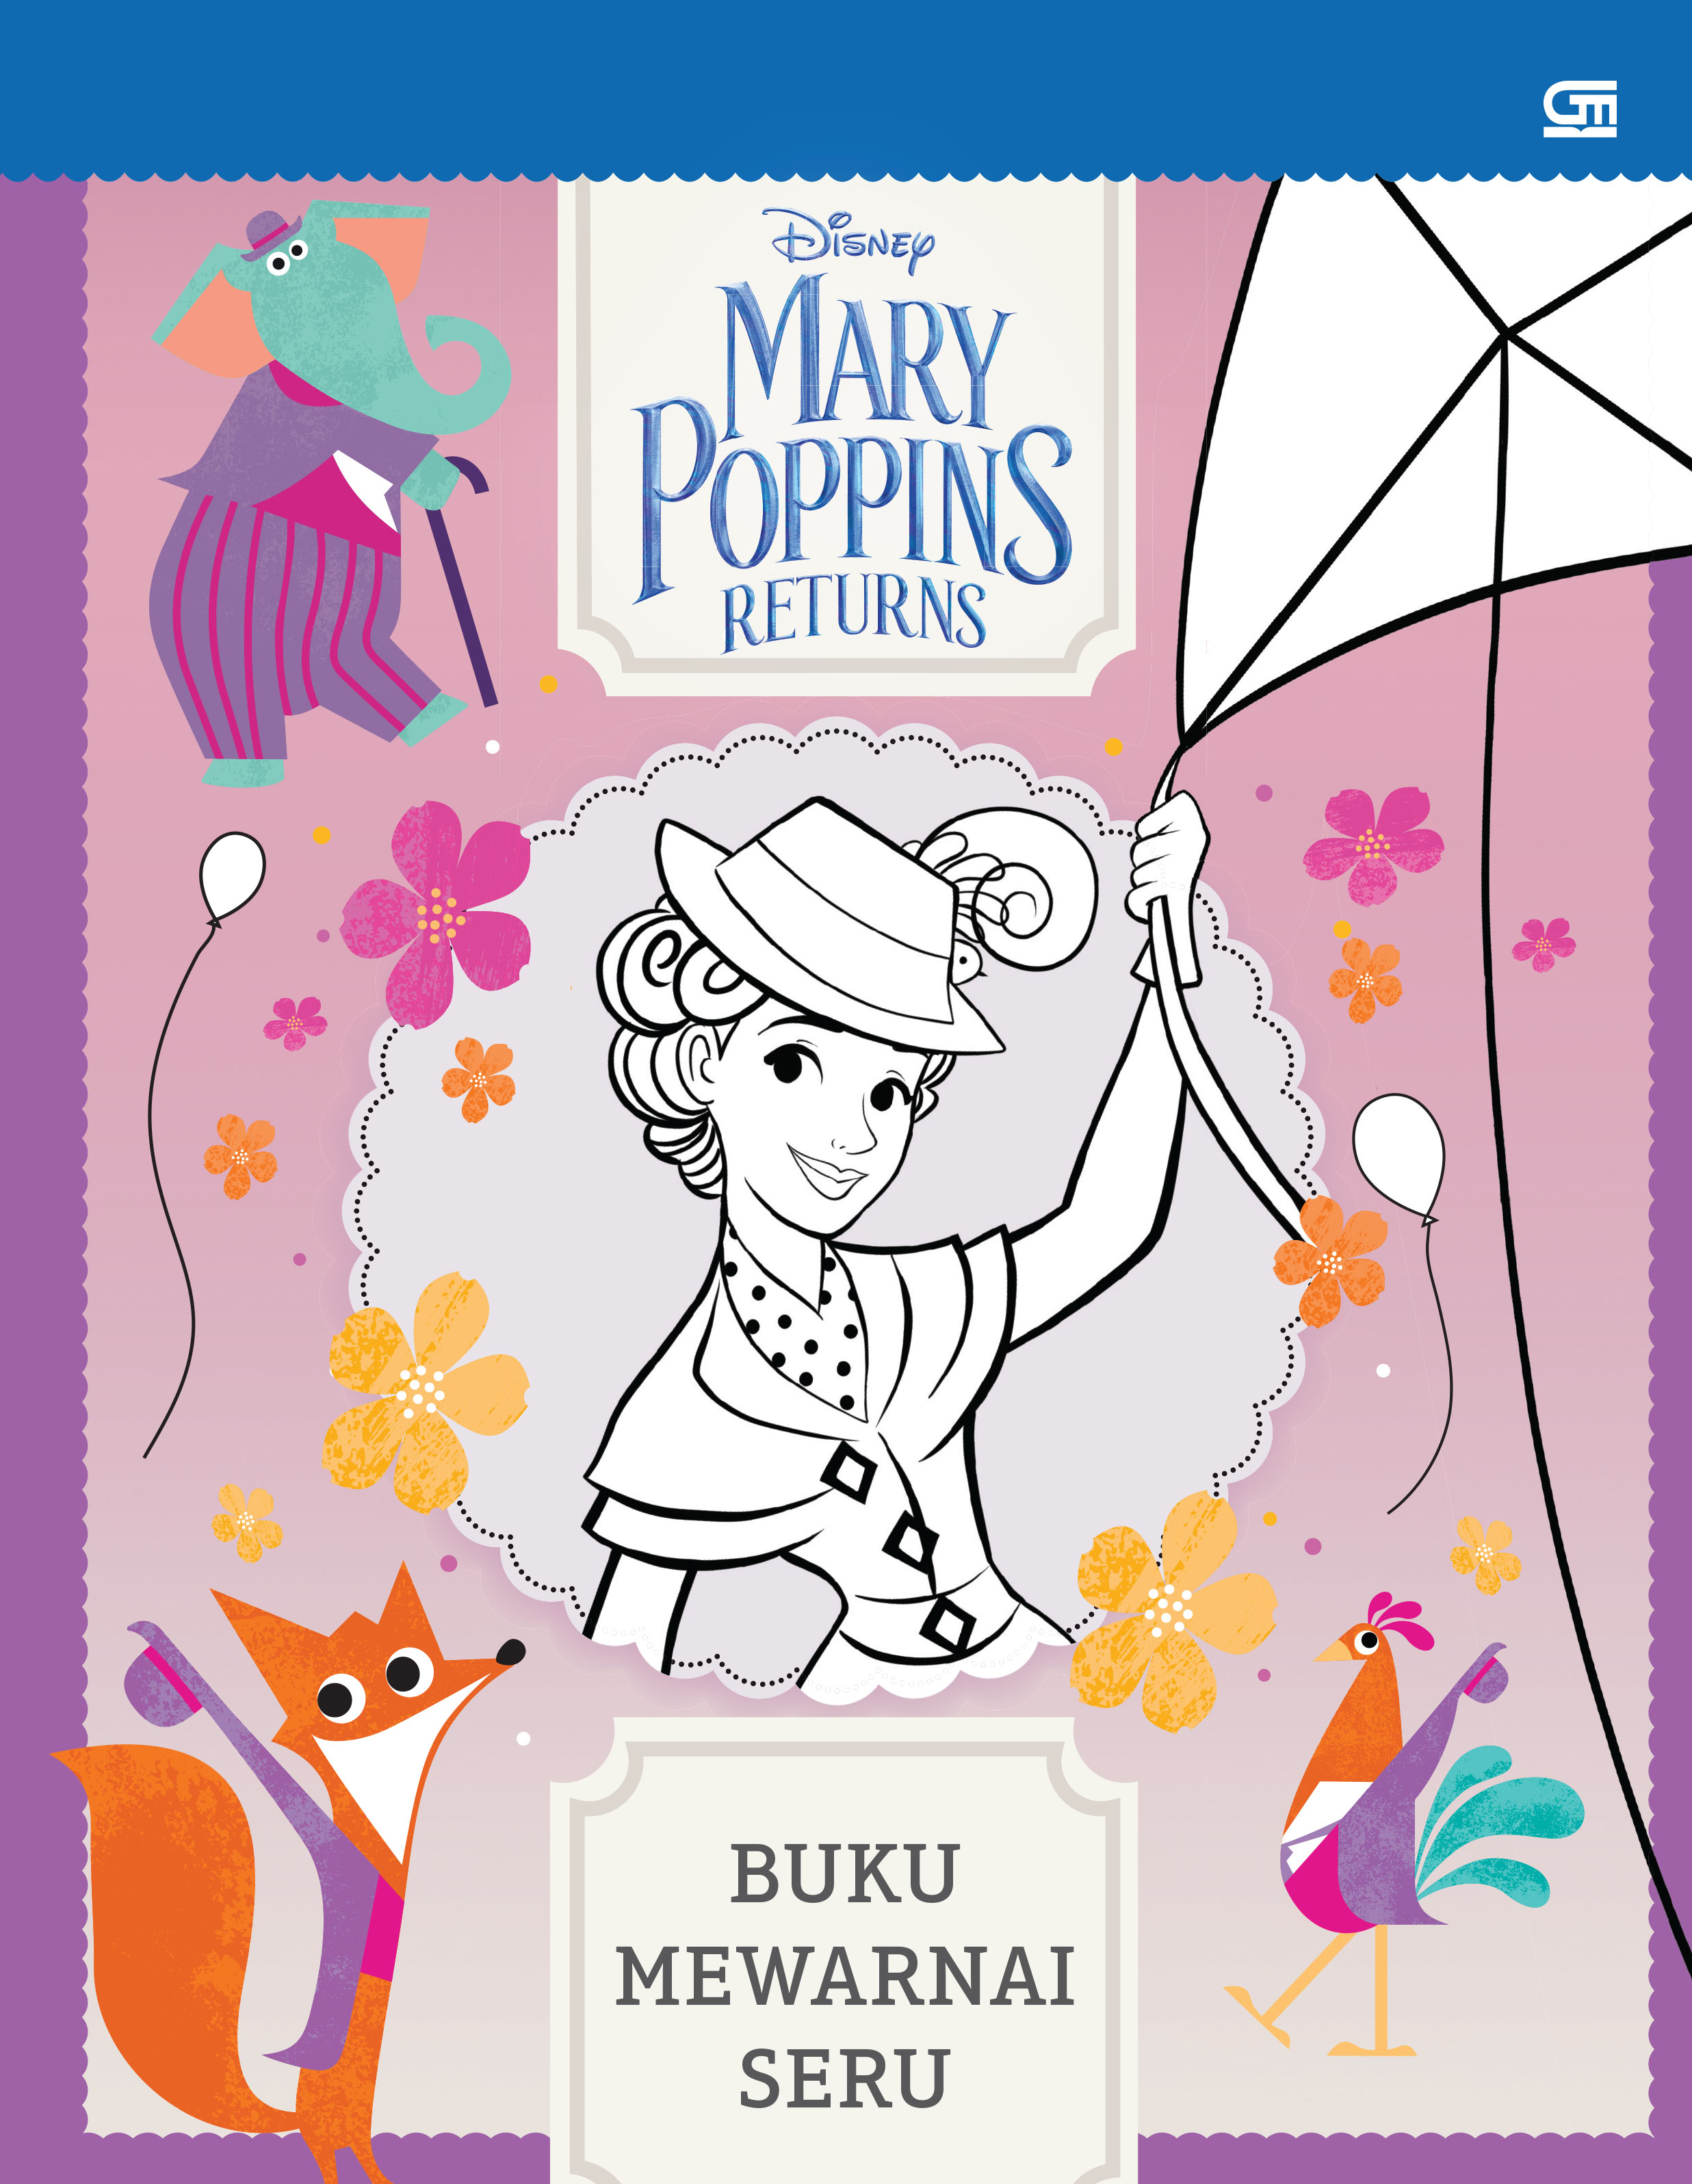 Mary Poppins Returns Buku Mewarnai Seru Gramedia Pustaka